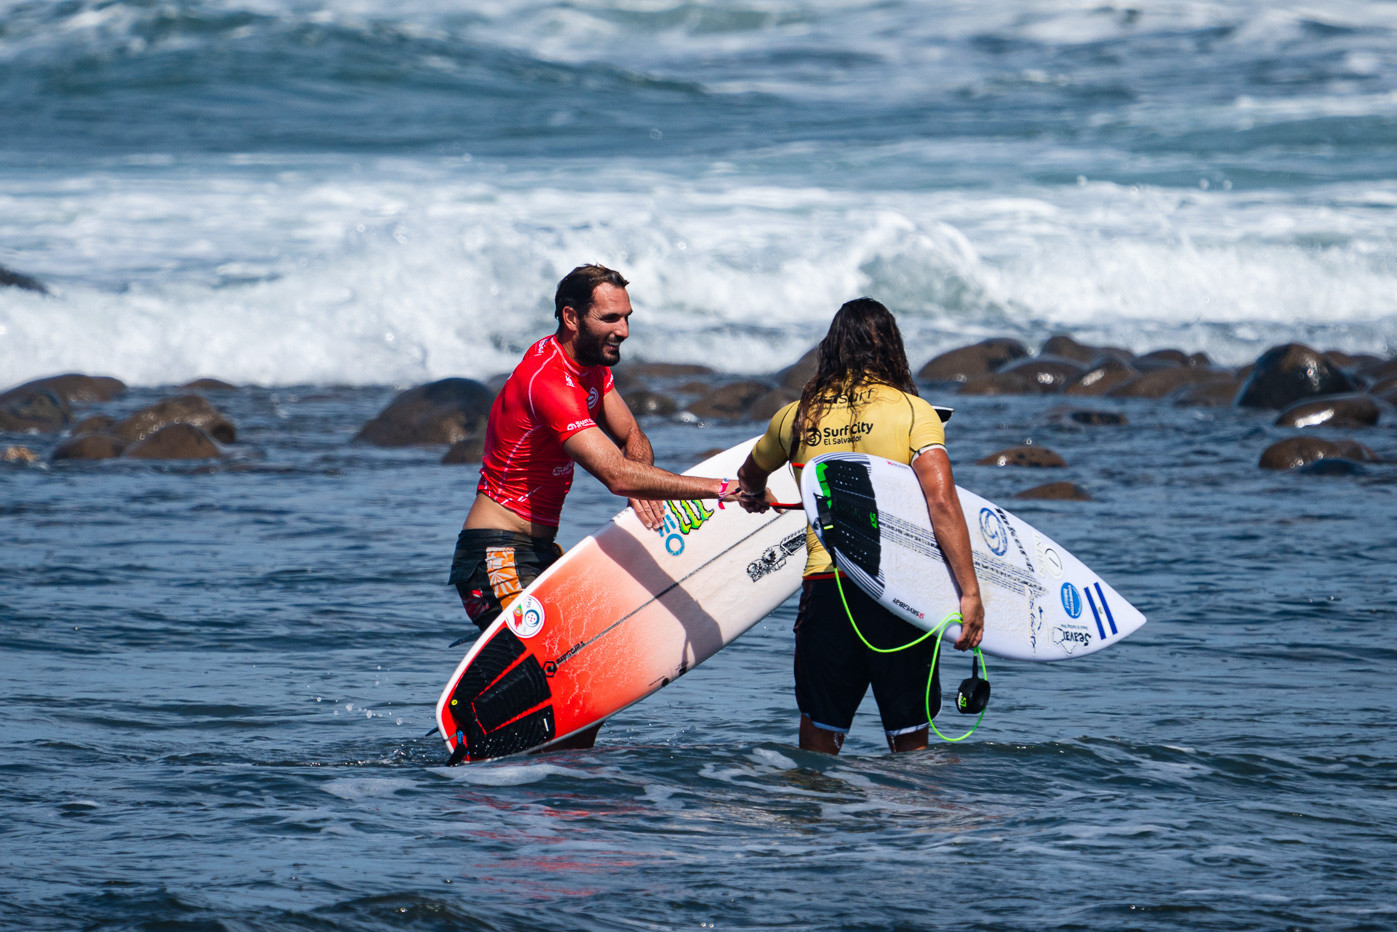 Frederico Morais of Portugal was among the winners of the men's main round heats at the World Surfing Games ©ISA/Ben Reed